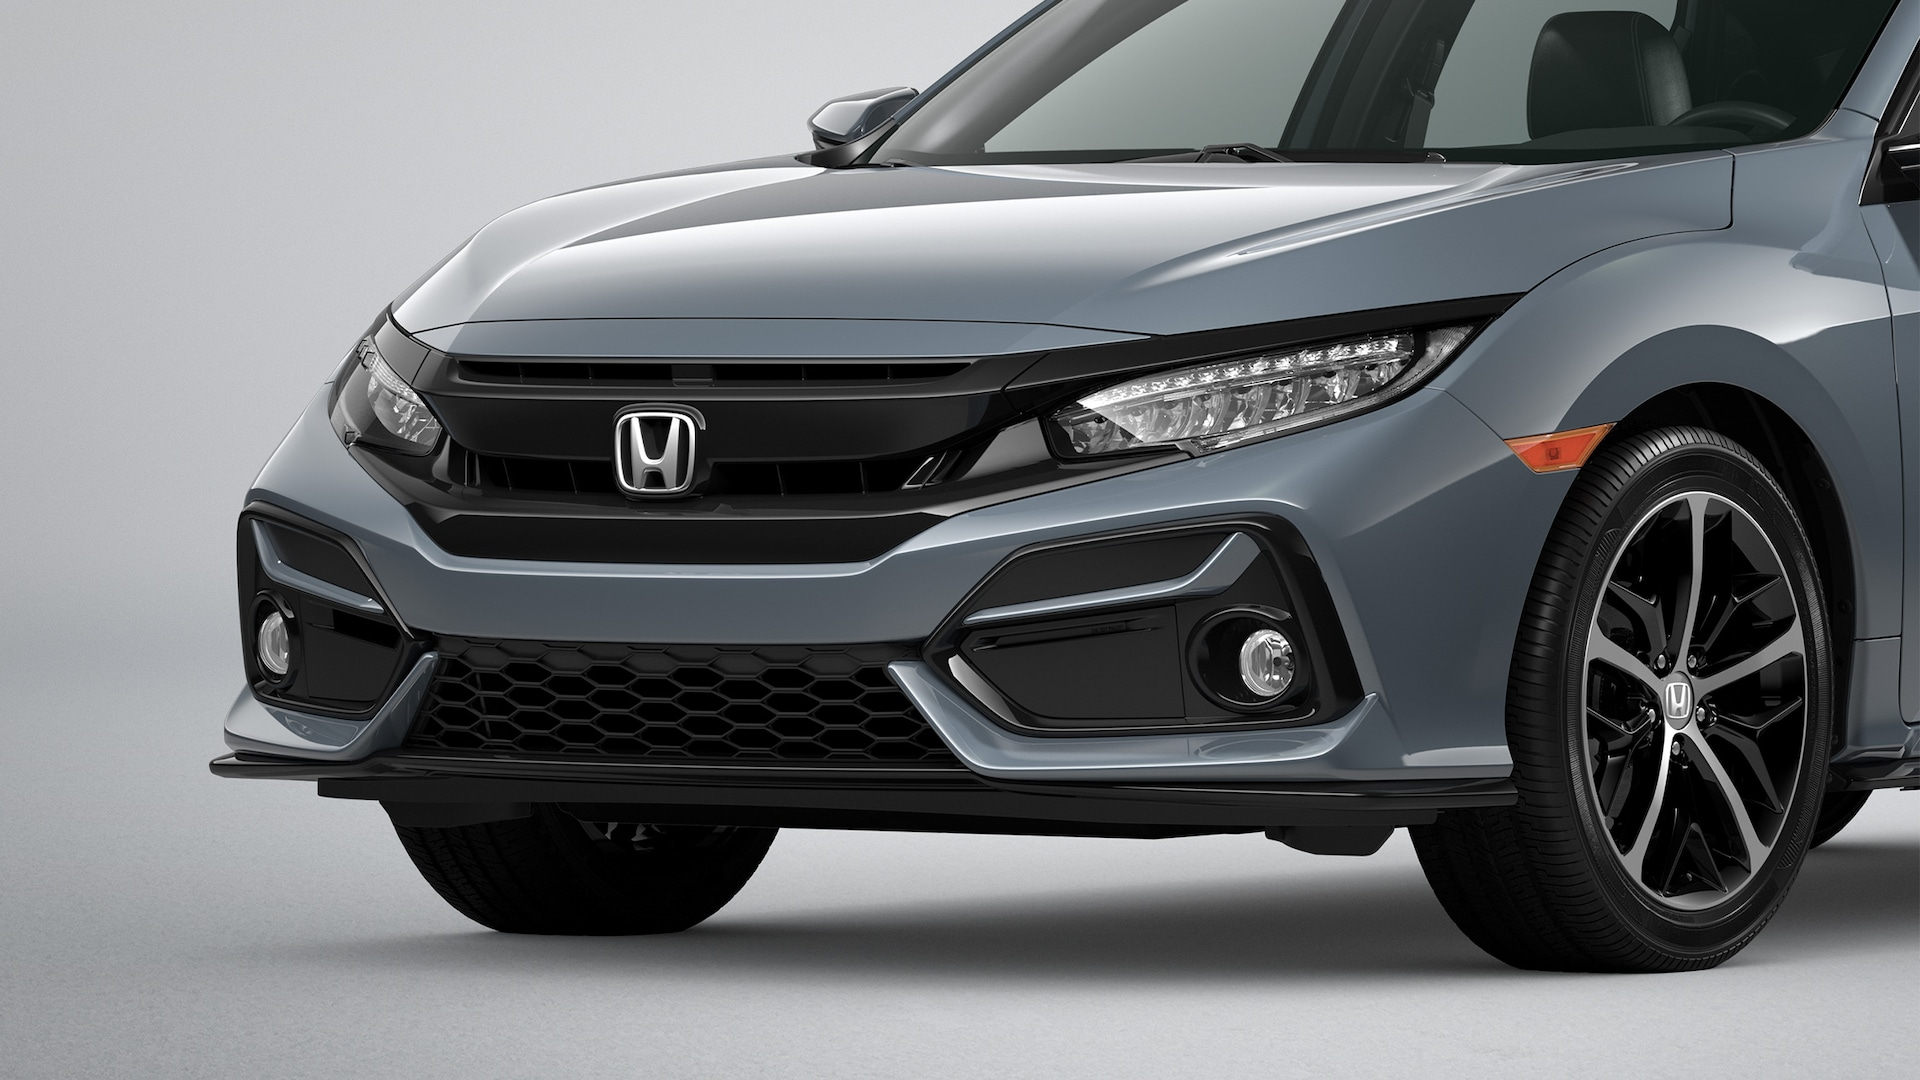 2021 Honda Civic Hatchback The Sporty Hatchback Honda